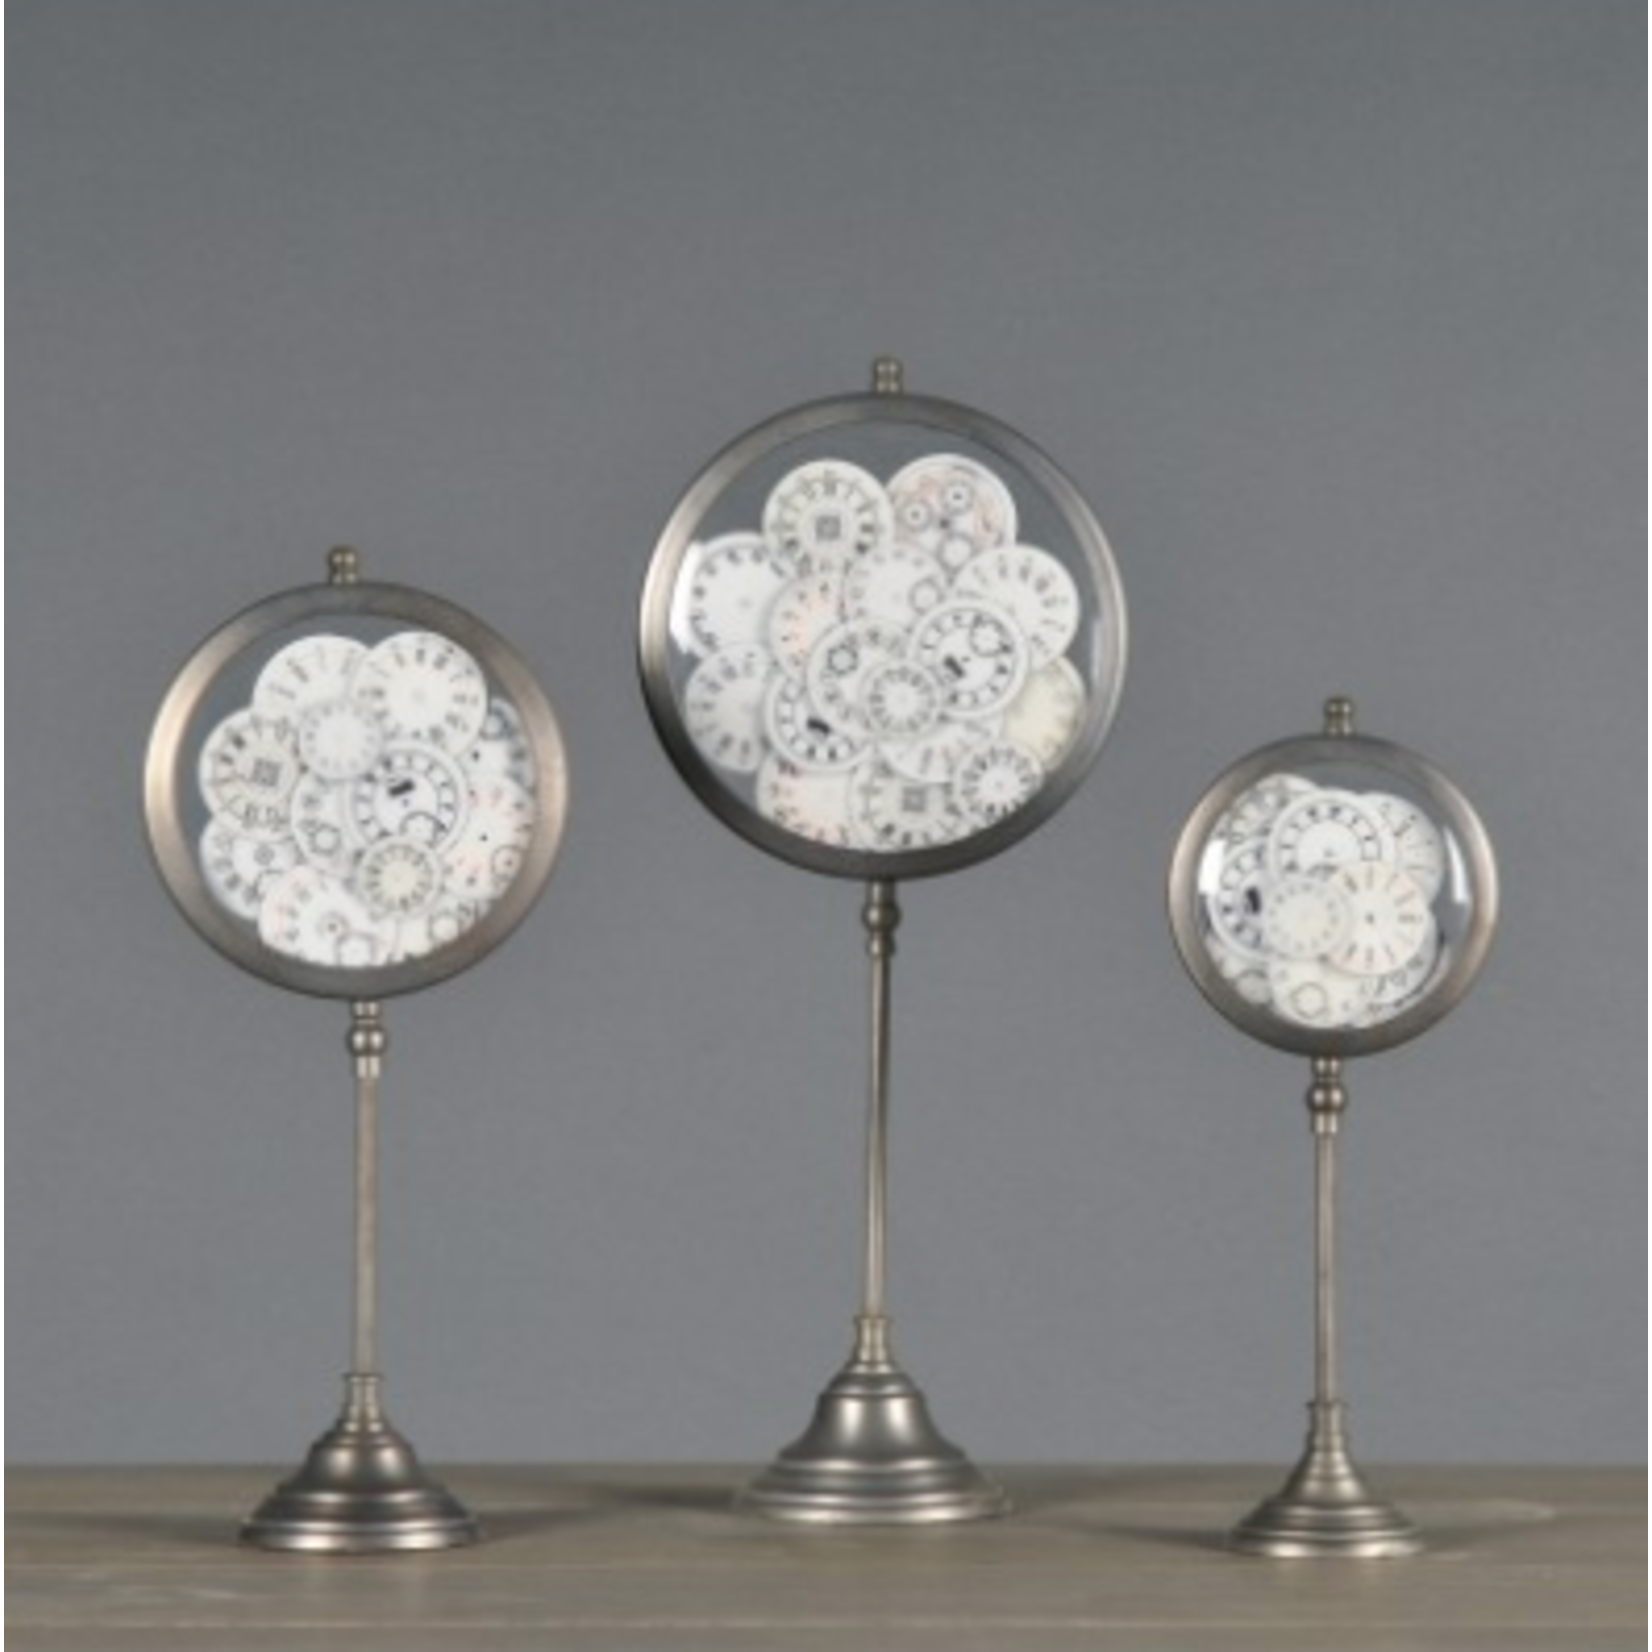 ATELIERS & CSD CLOCK FACES IN STANDS (SET OF 3)